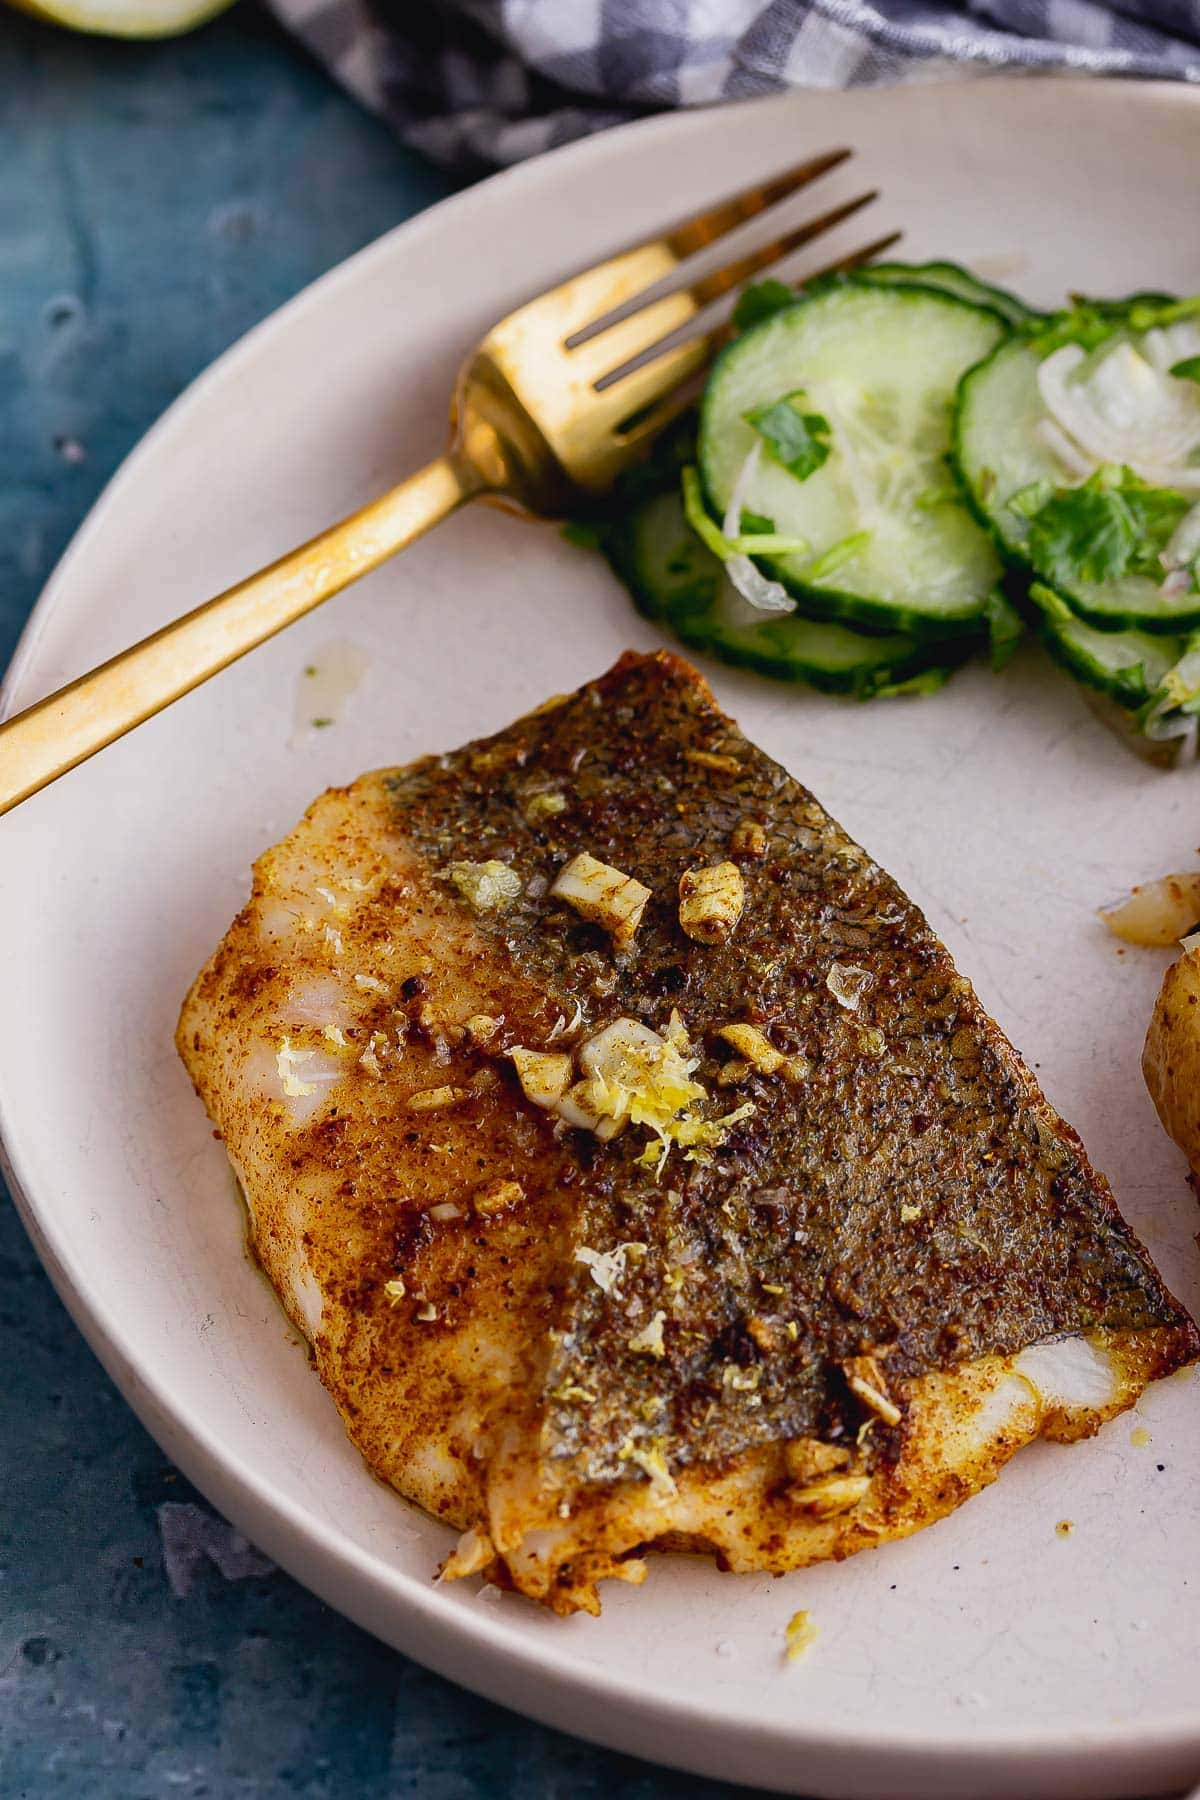 Baked fish fillet in a white bowl with cucumber